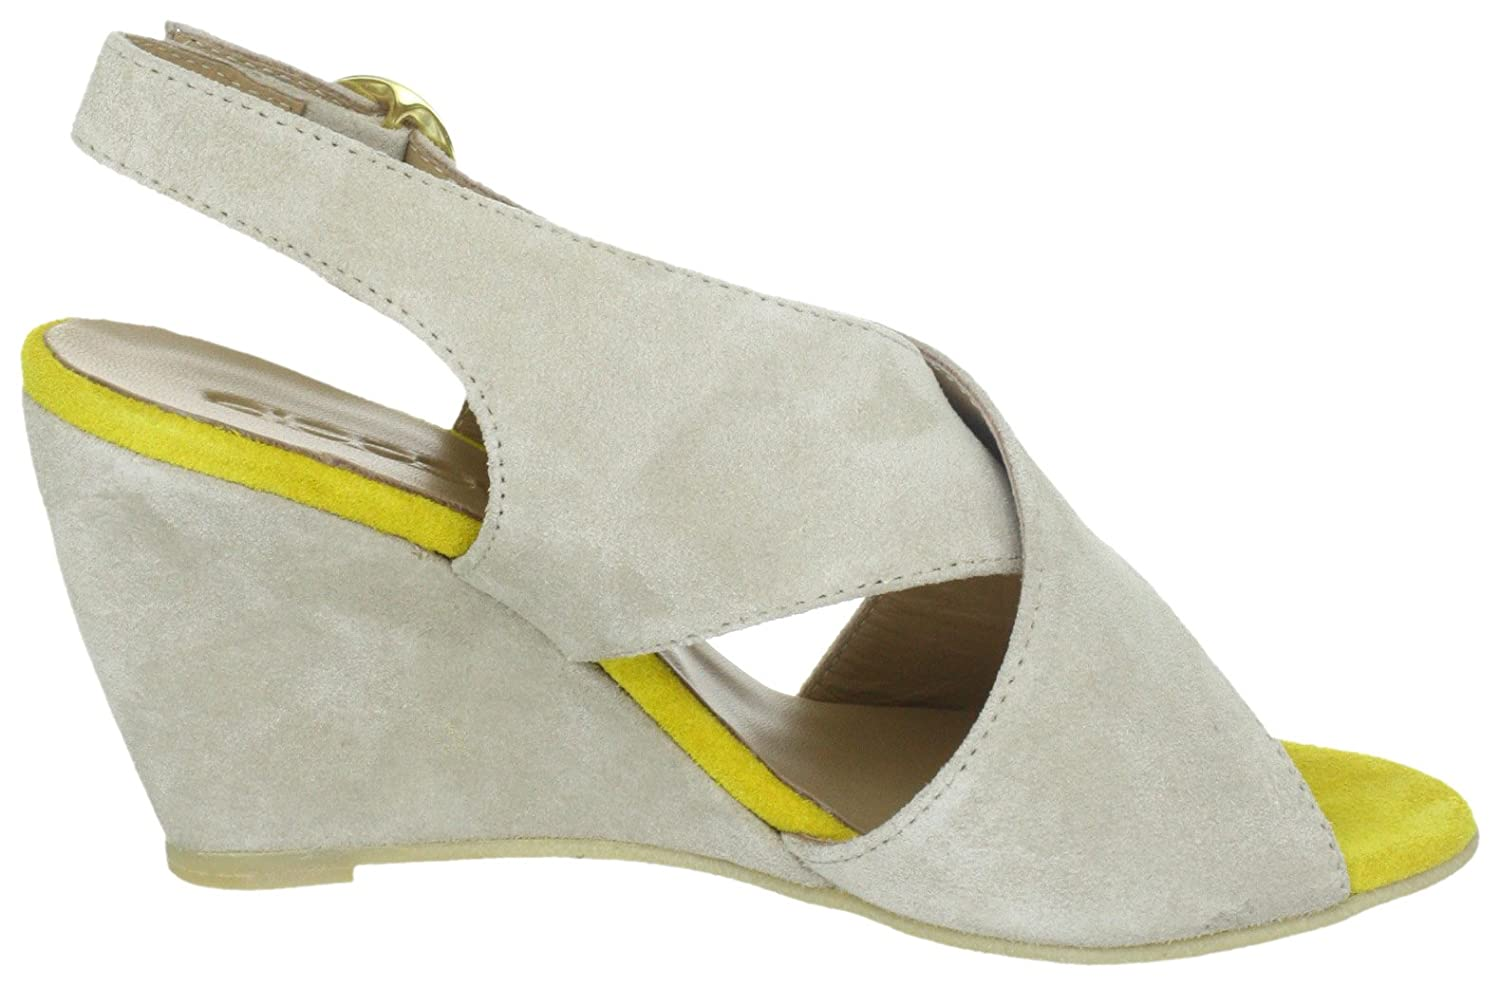 PIECES PIECES PIECES Damen OTTINE Shop Suede Wedge Sandal - LT Sand Pumps 1f3a02